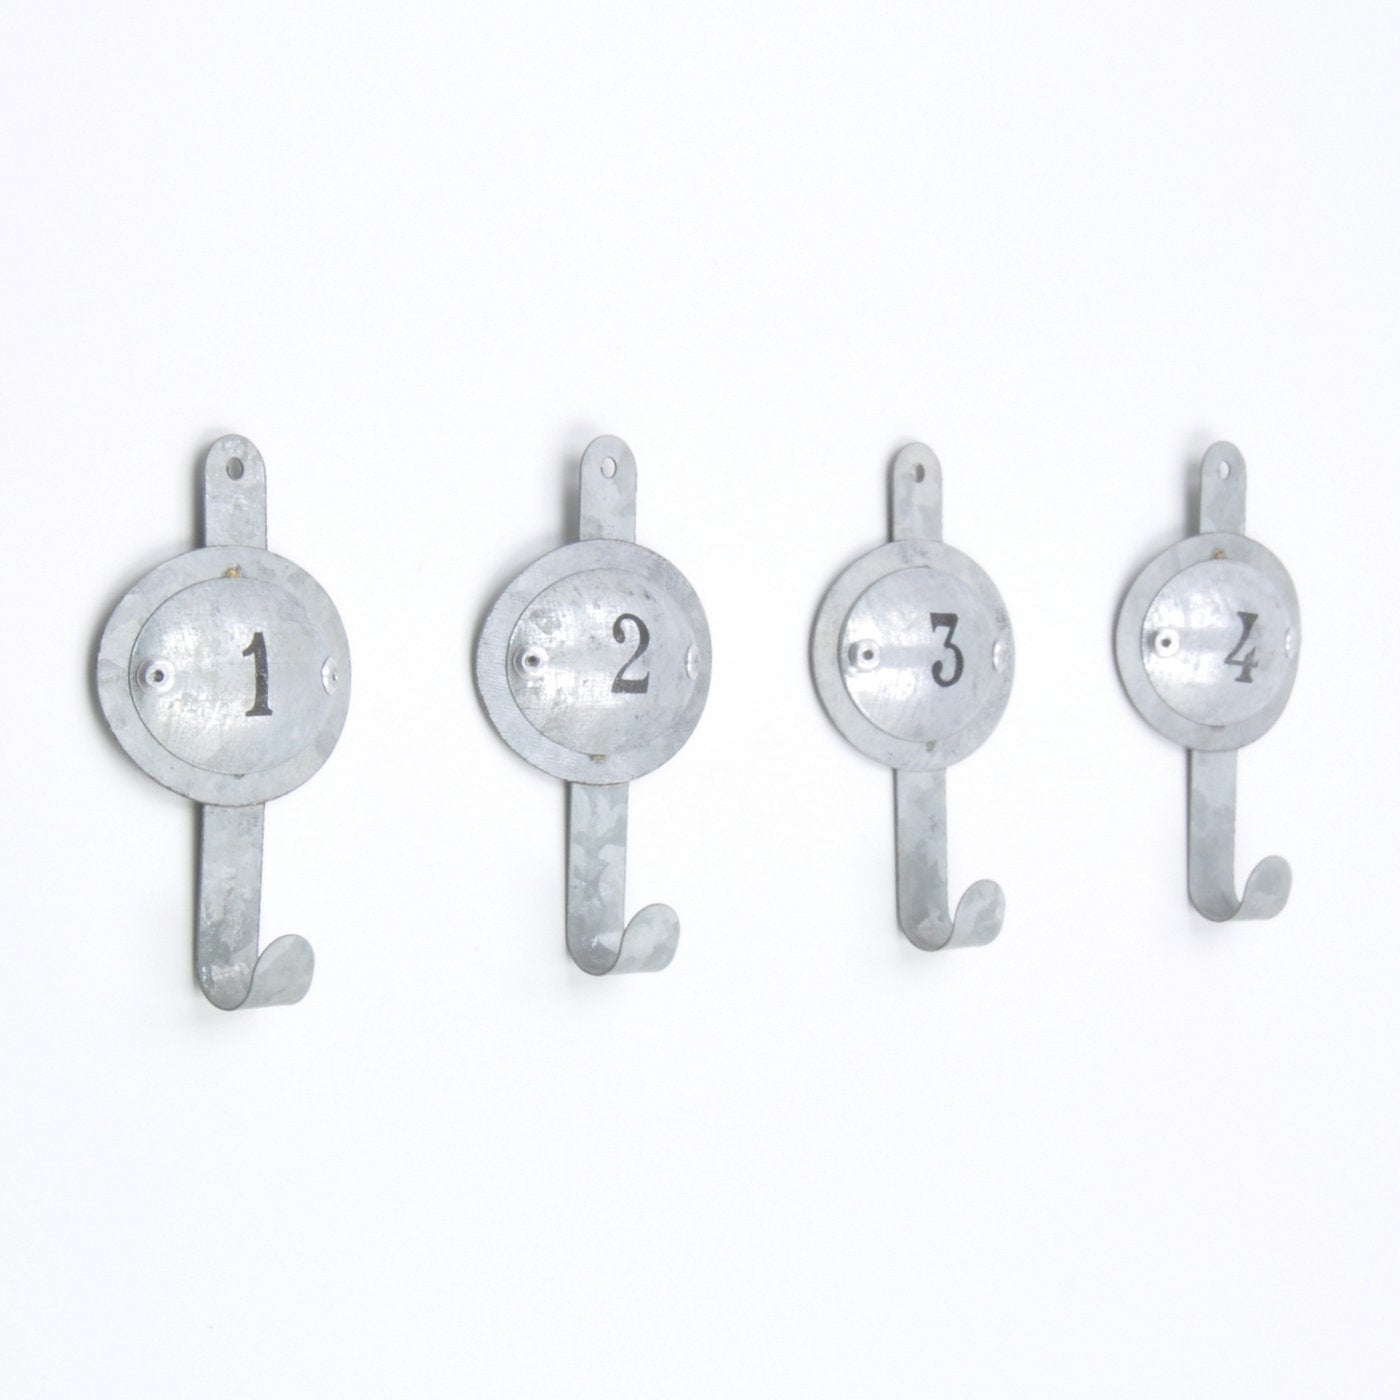 Industrial Numbered Grey Metal 1 to 4 Coat Hook Hooks Wall Mounted Door Hook Hanger for Hat Coat Clothes Kitchen Bathroom Bedroom Office (Screws Included)